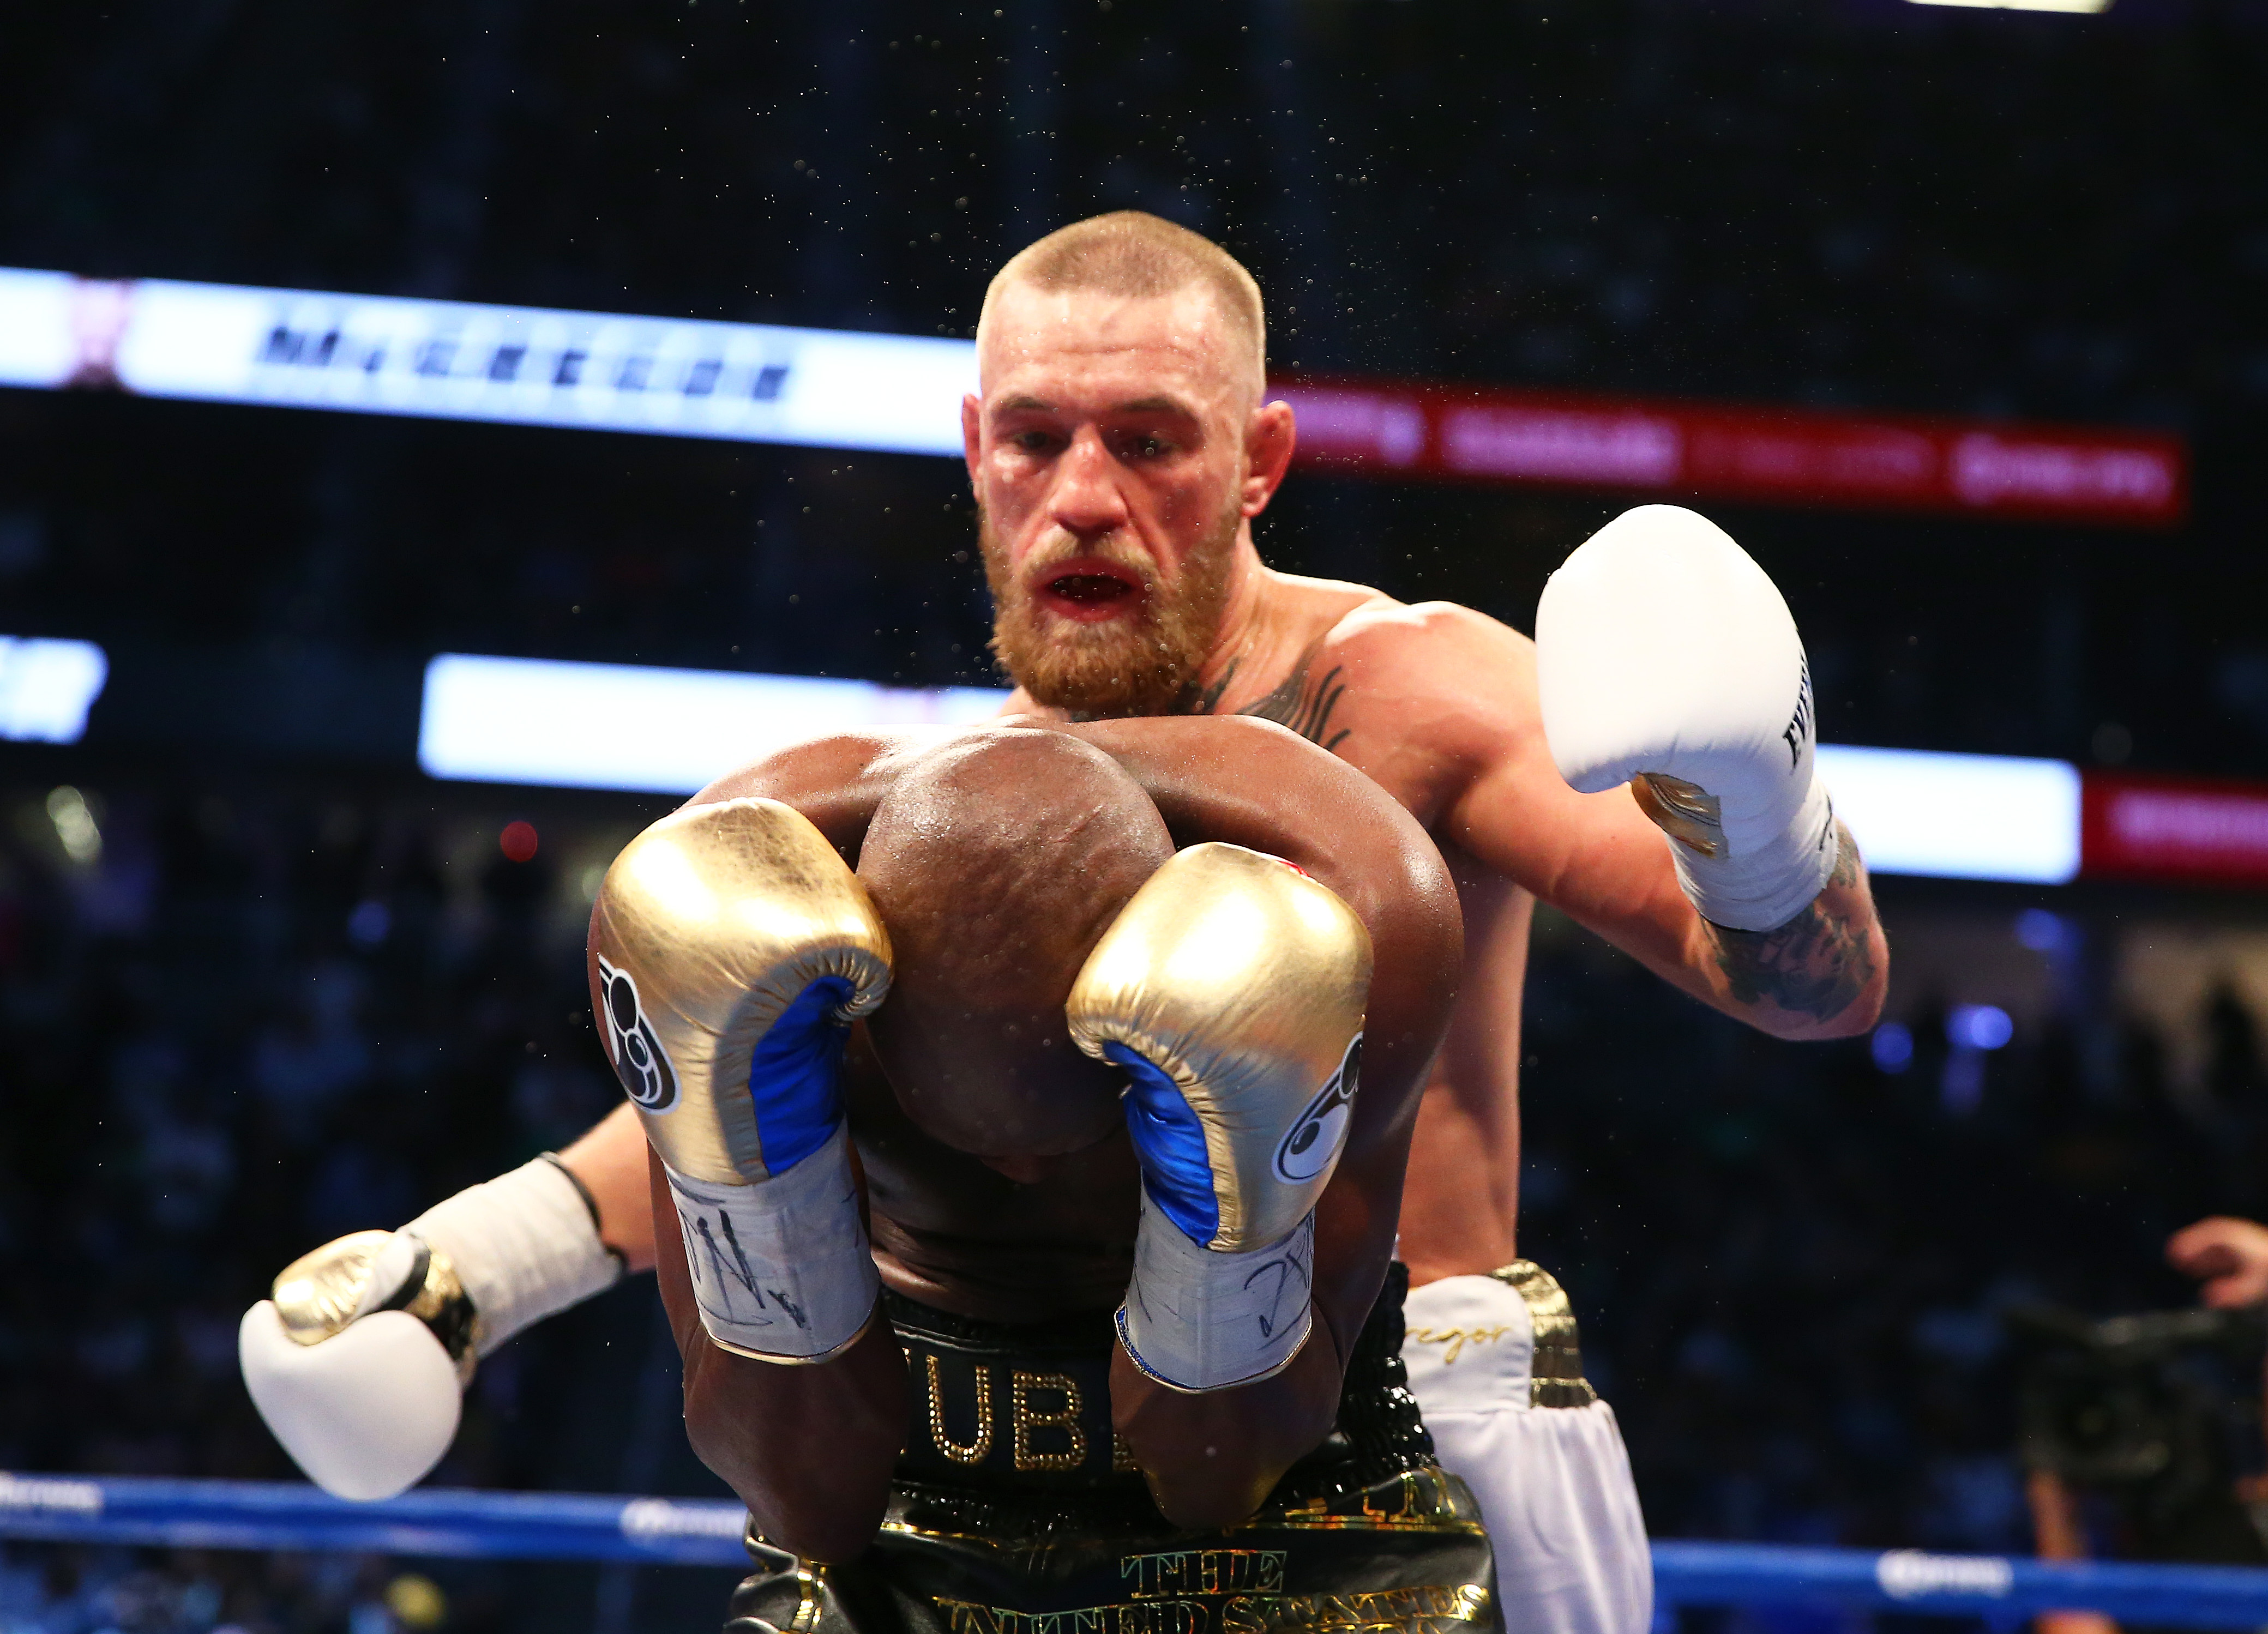 Conor McGregor confident in Floyd Mayweather rematch - 'I